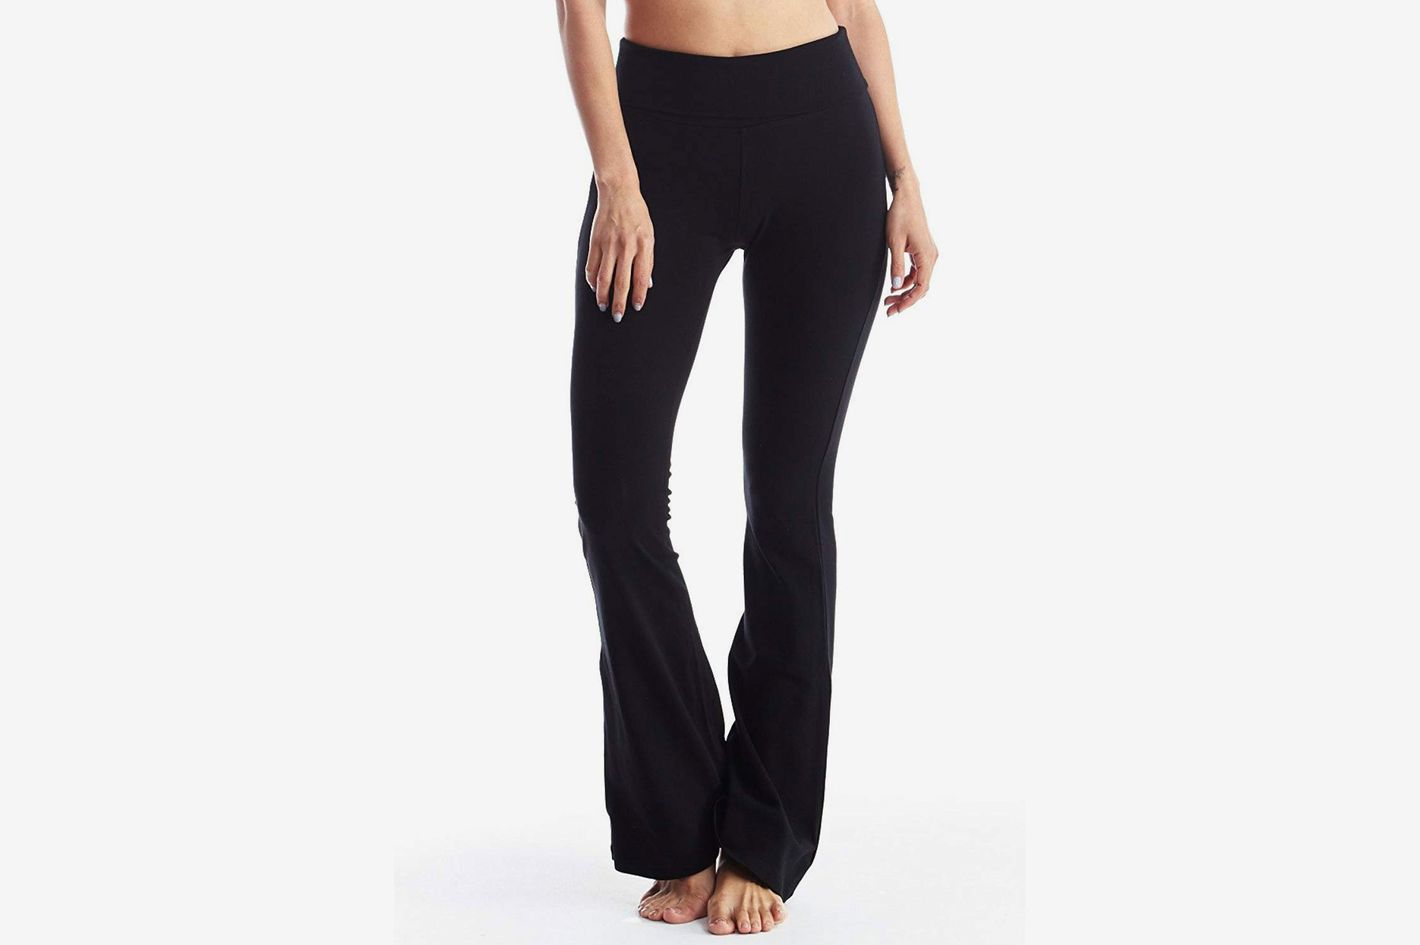 Popular Basics Women's Cotton Yoga Pants With Fold Down Waist